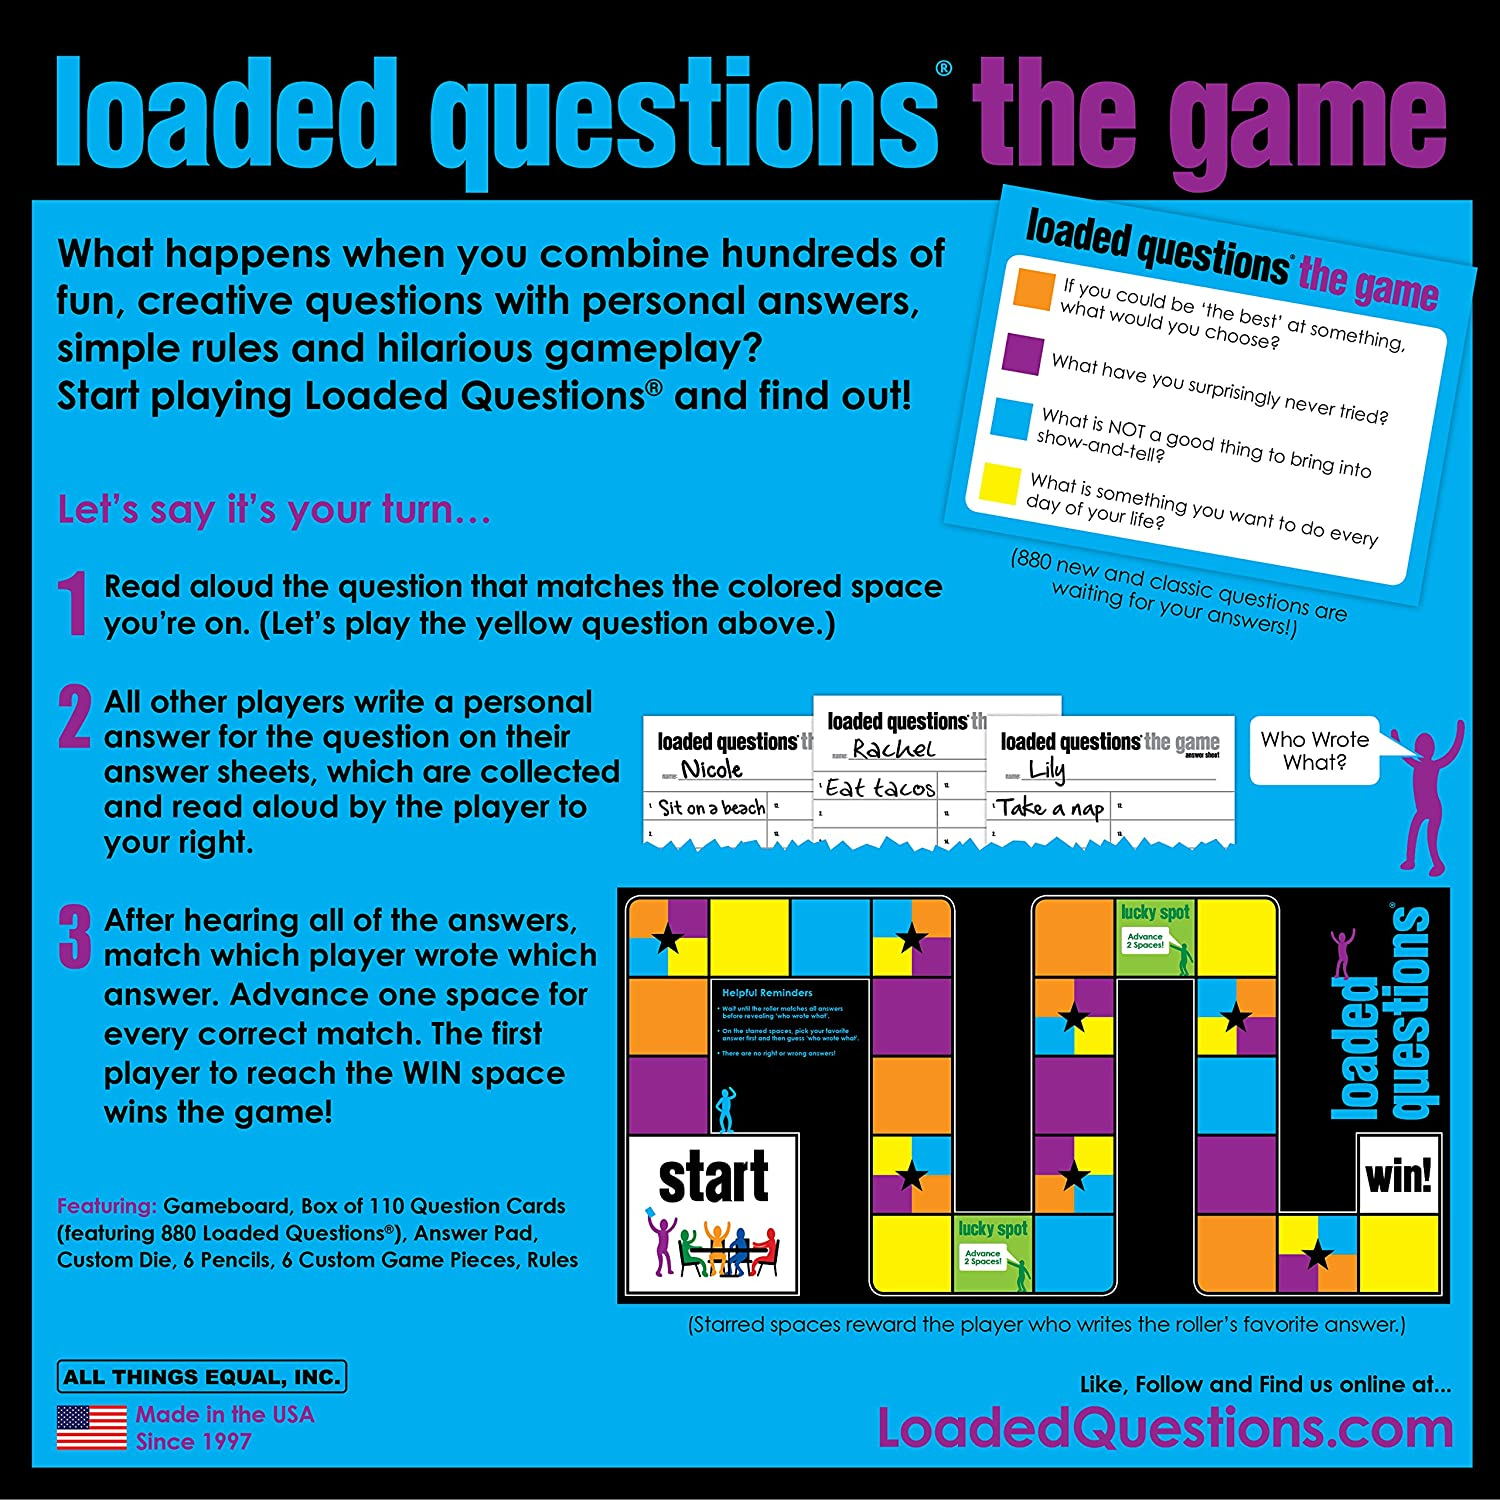 Amazon.com: Loaded Questions - The Family/Friends Version of the ...